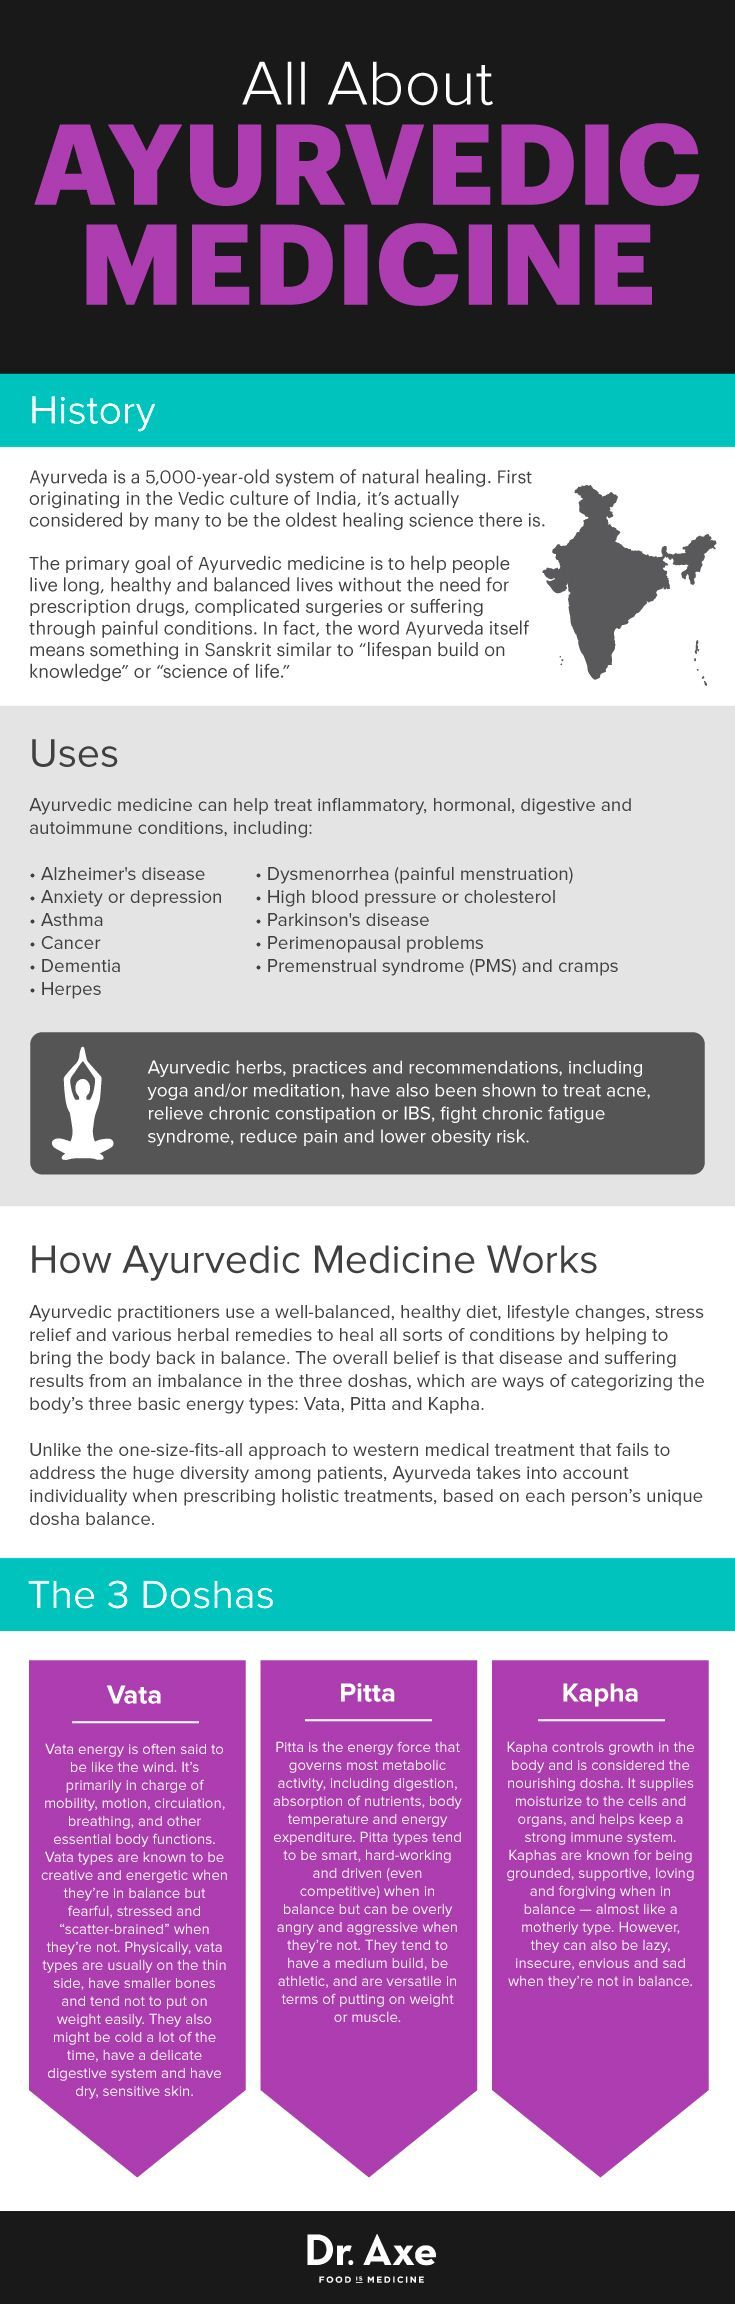 Ayurvedic medicine guide - Dr. Axe http://www.draxe.com #health #holistic #natural